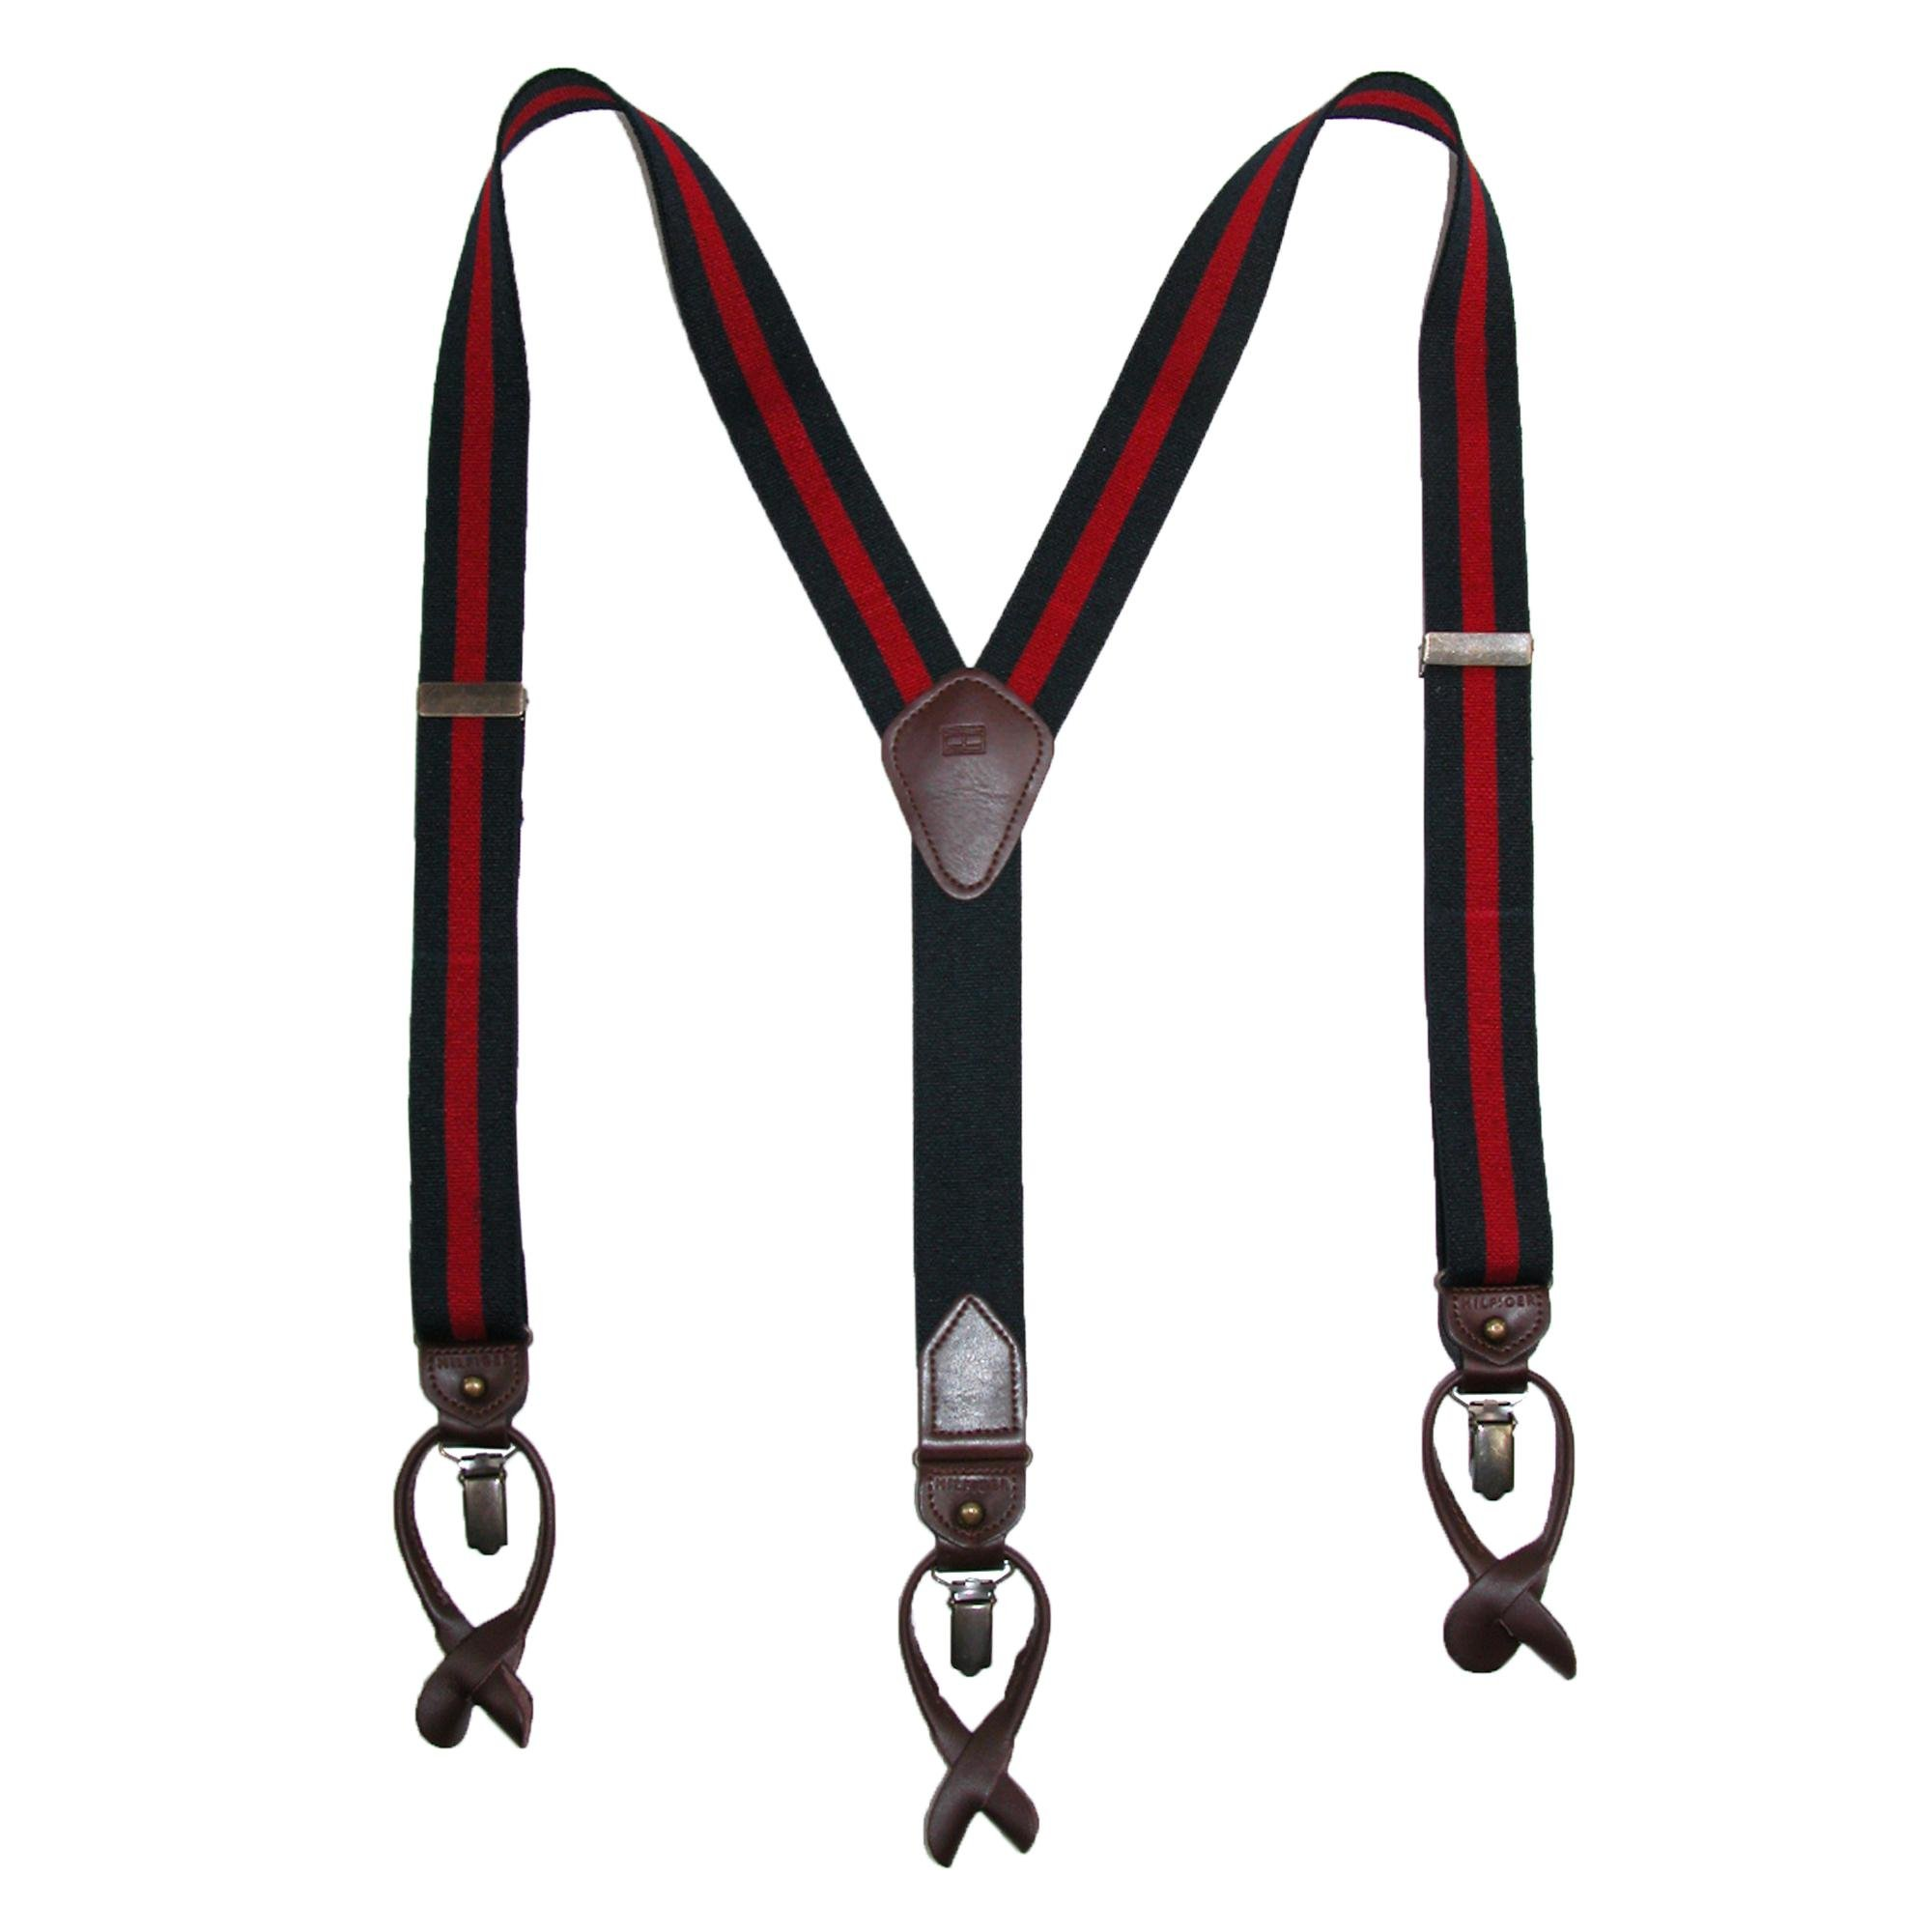 Tommy Hilfiger Men's 32mm Suspenders,Navy/Red,One Size